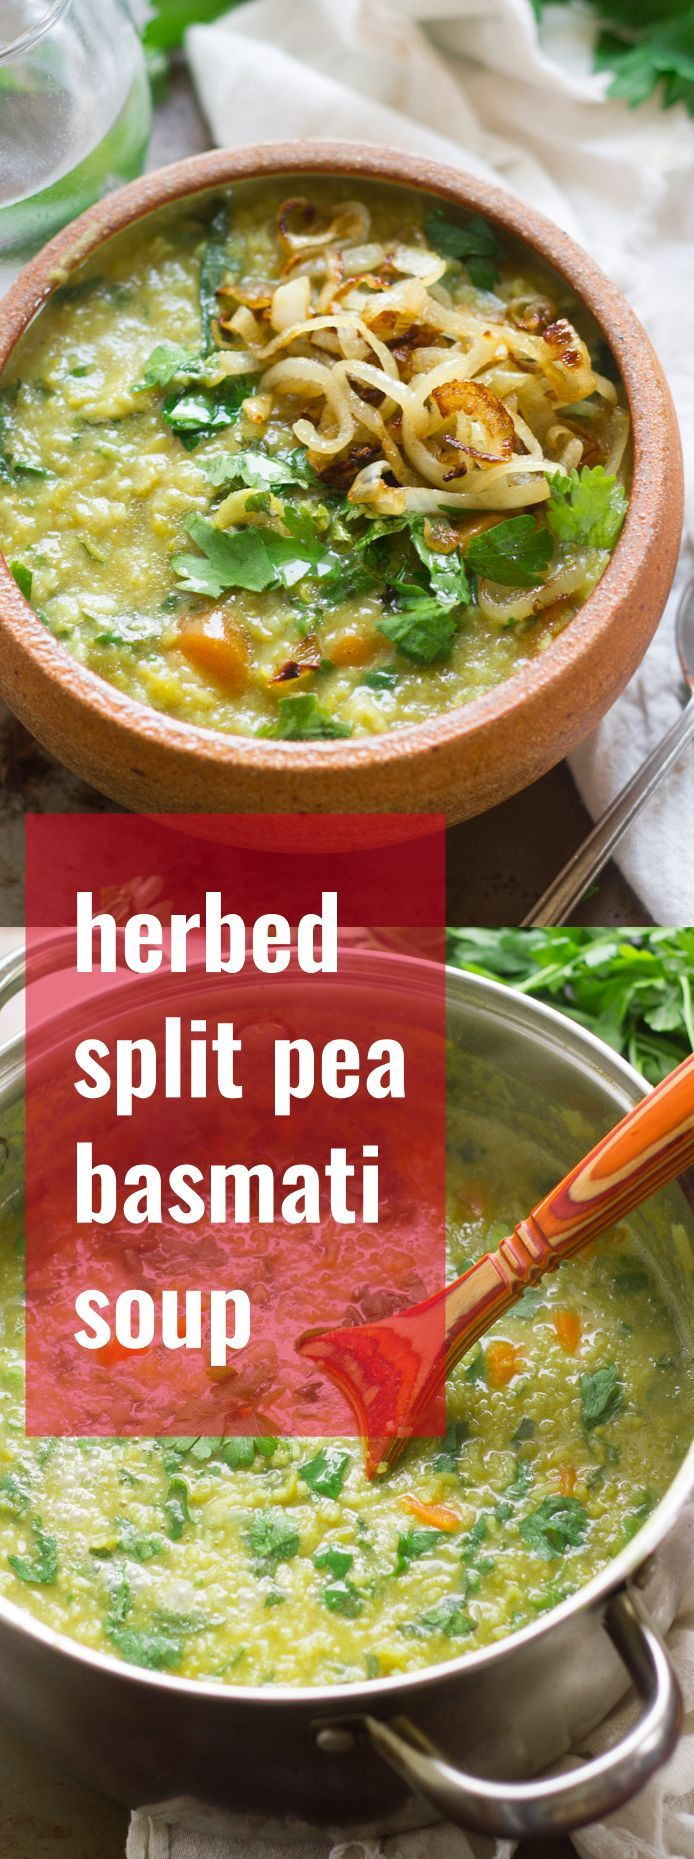 Hearty split peas and fragrant basmati rice are simmered up with fresh herbs and caramelized onions to create this cozy and flavorful Persian-inspired split pea soup.